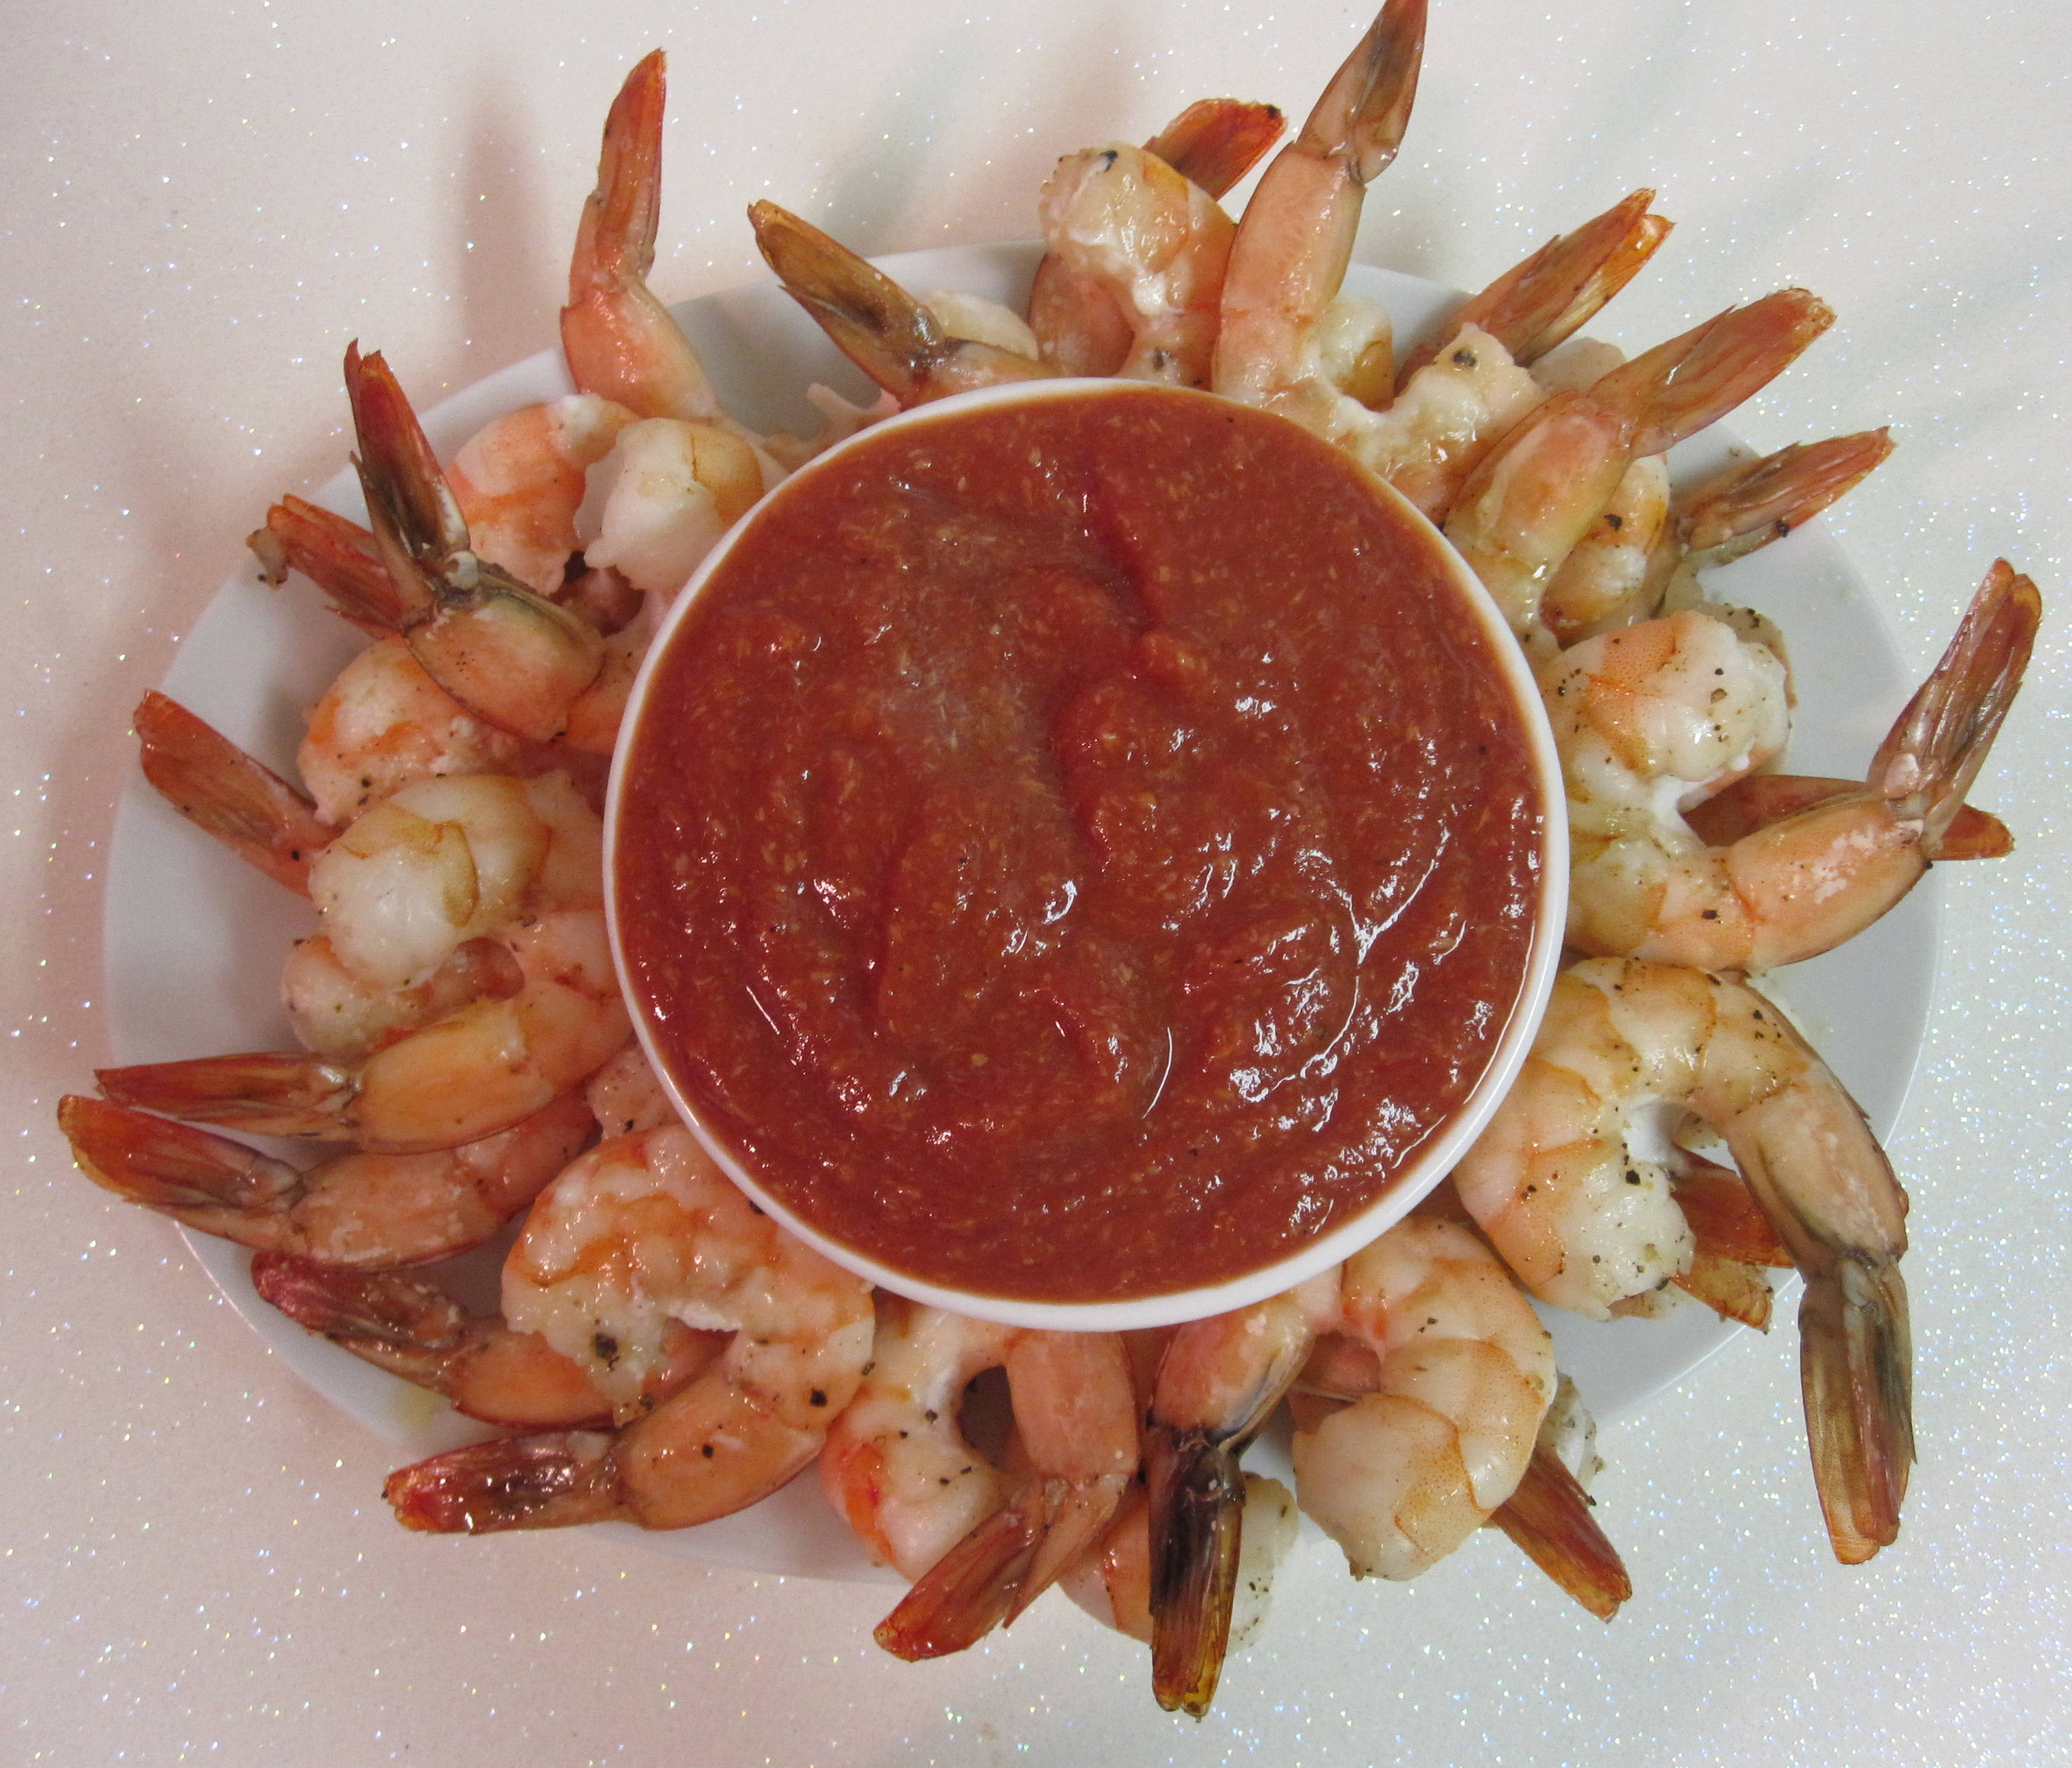 Ina garten 39 s roasted shrimp cocktail recipe popsugar food - Ina garten baking recipes ...